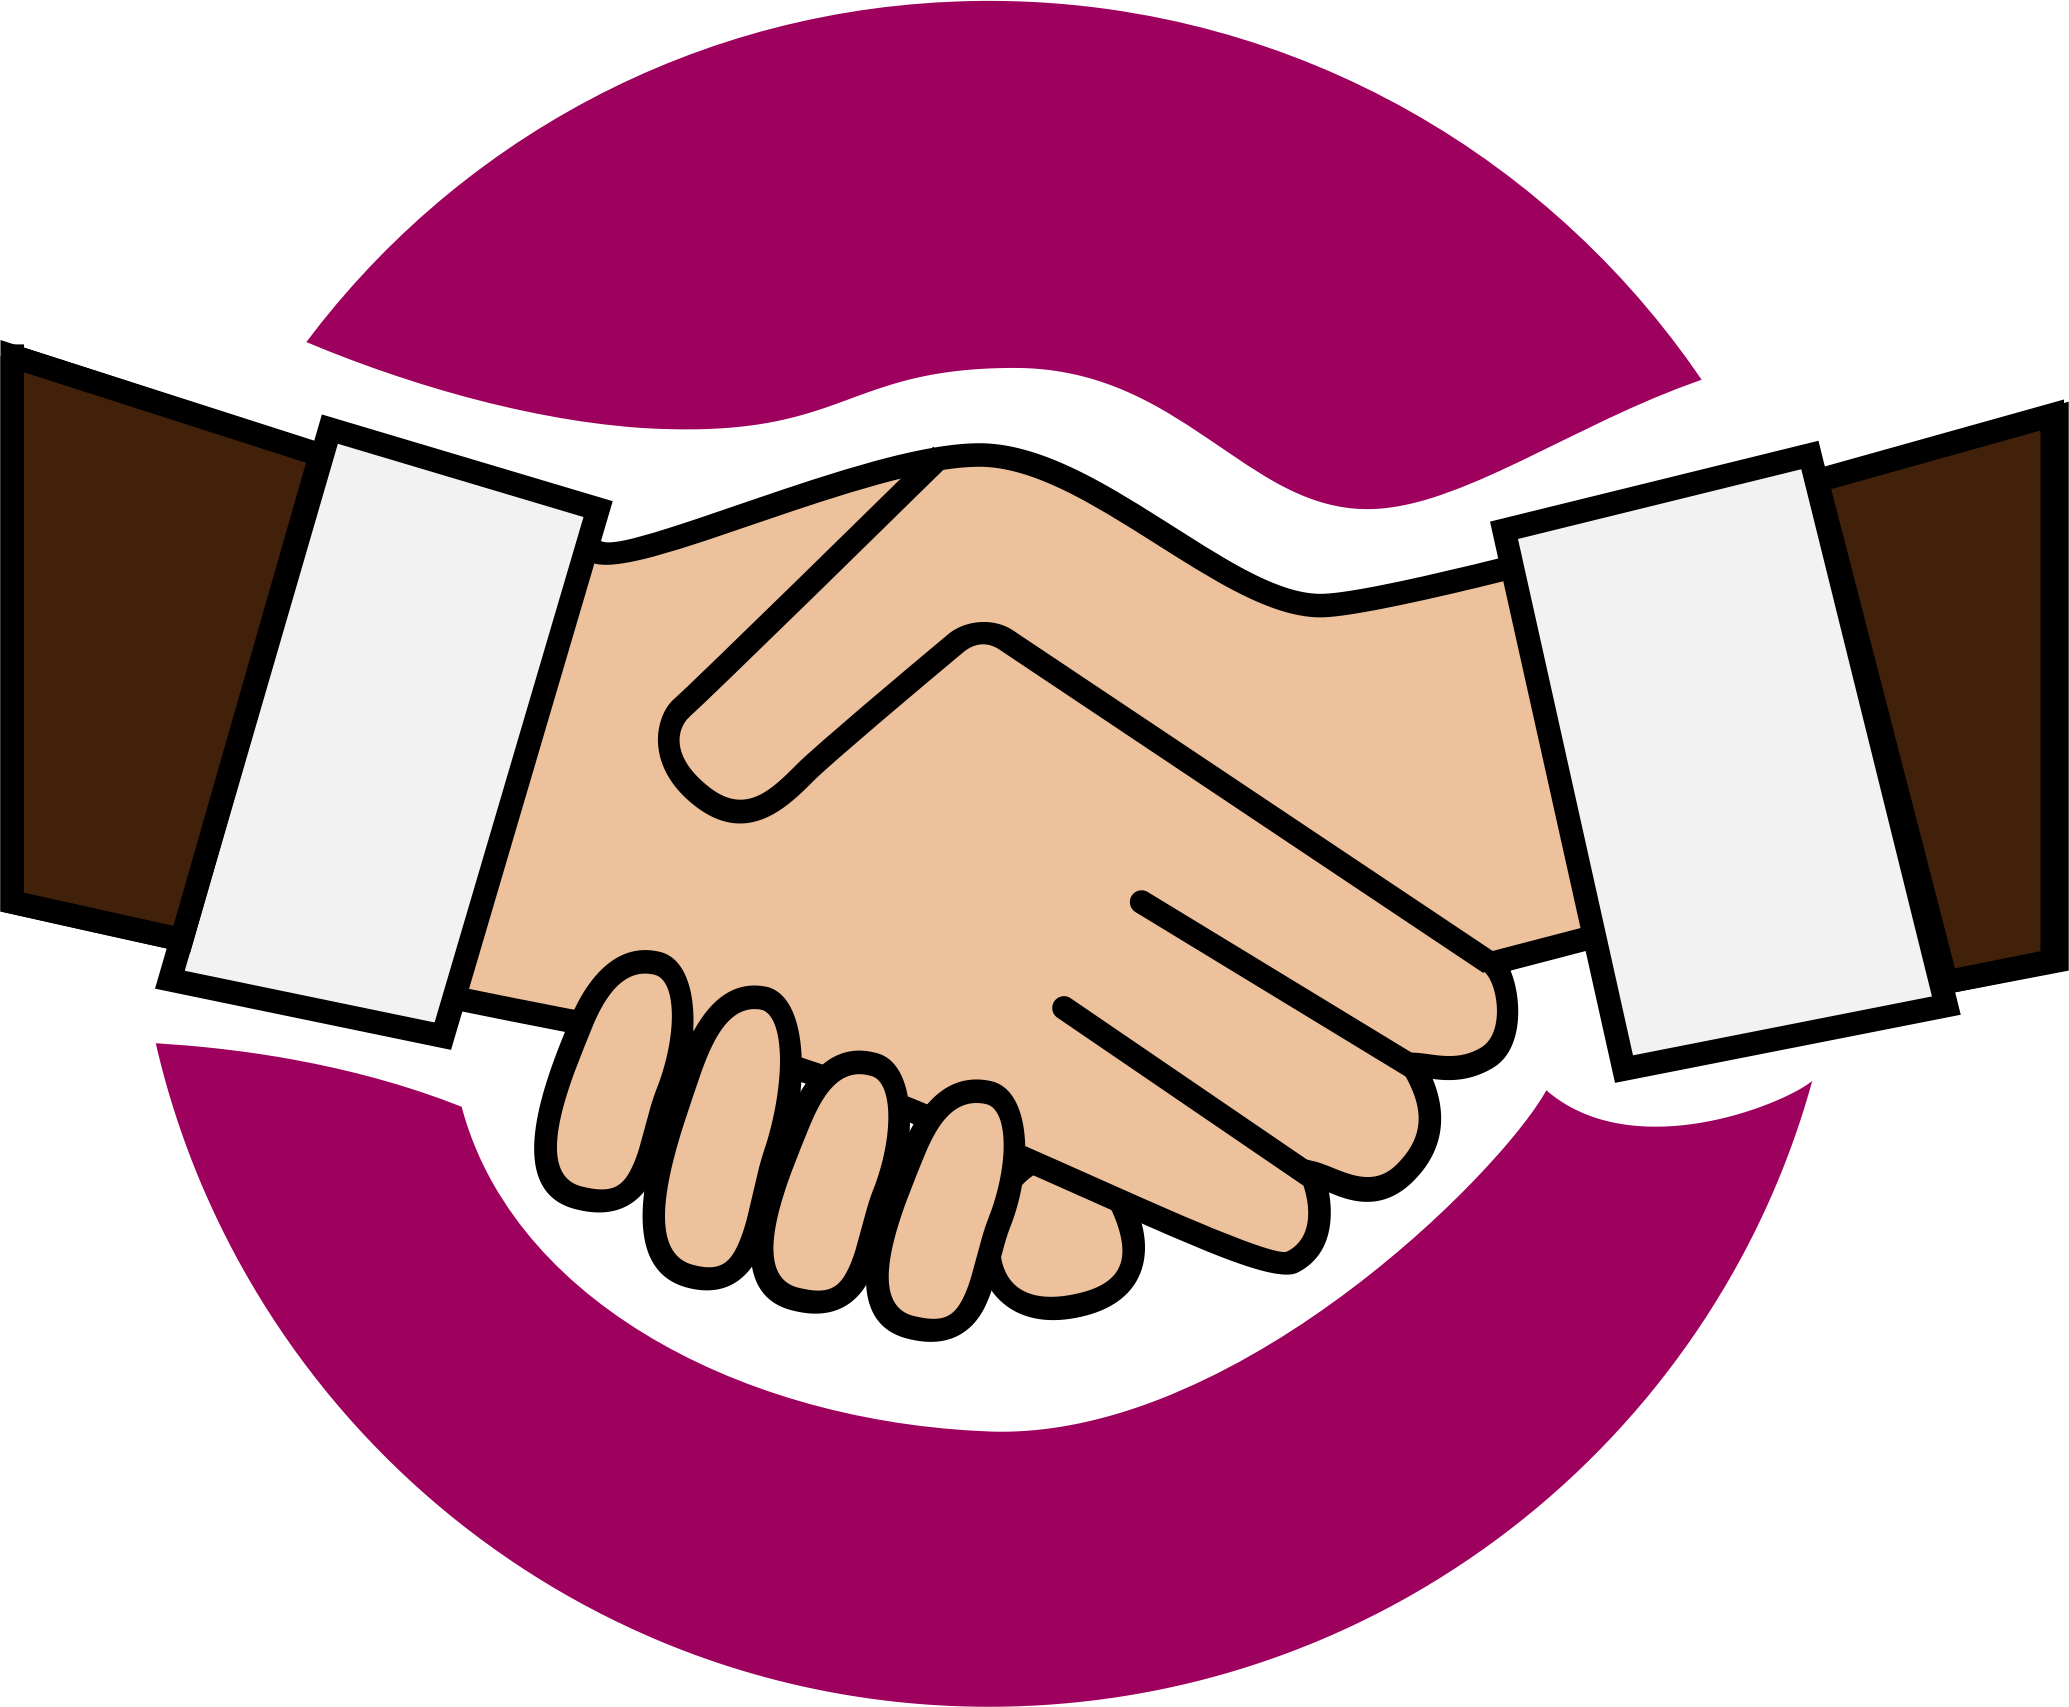 banner free Handshake clipart. A icon big image.